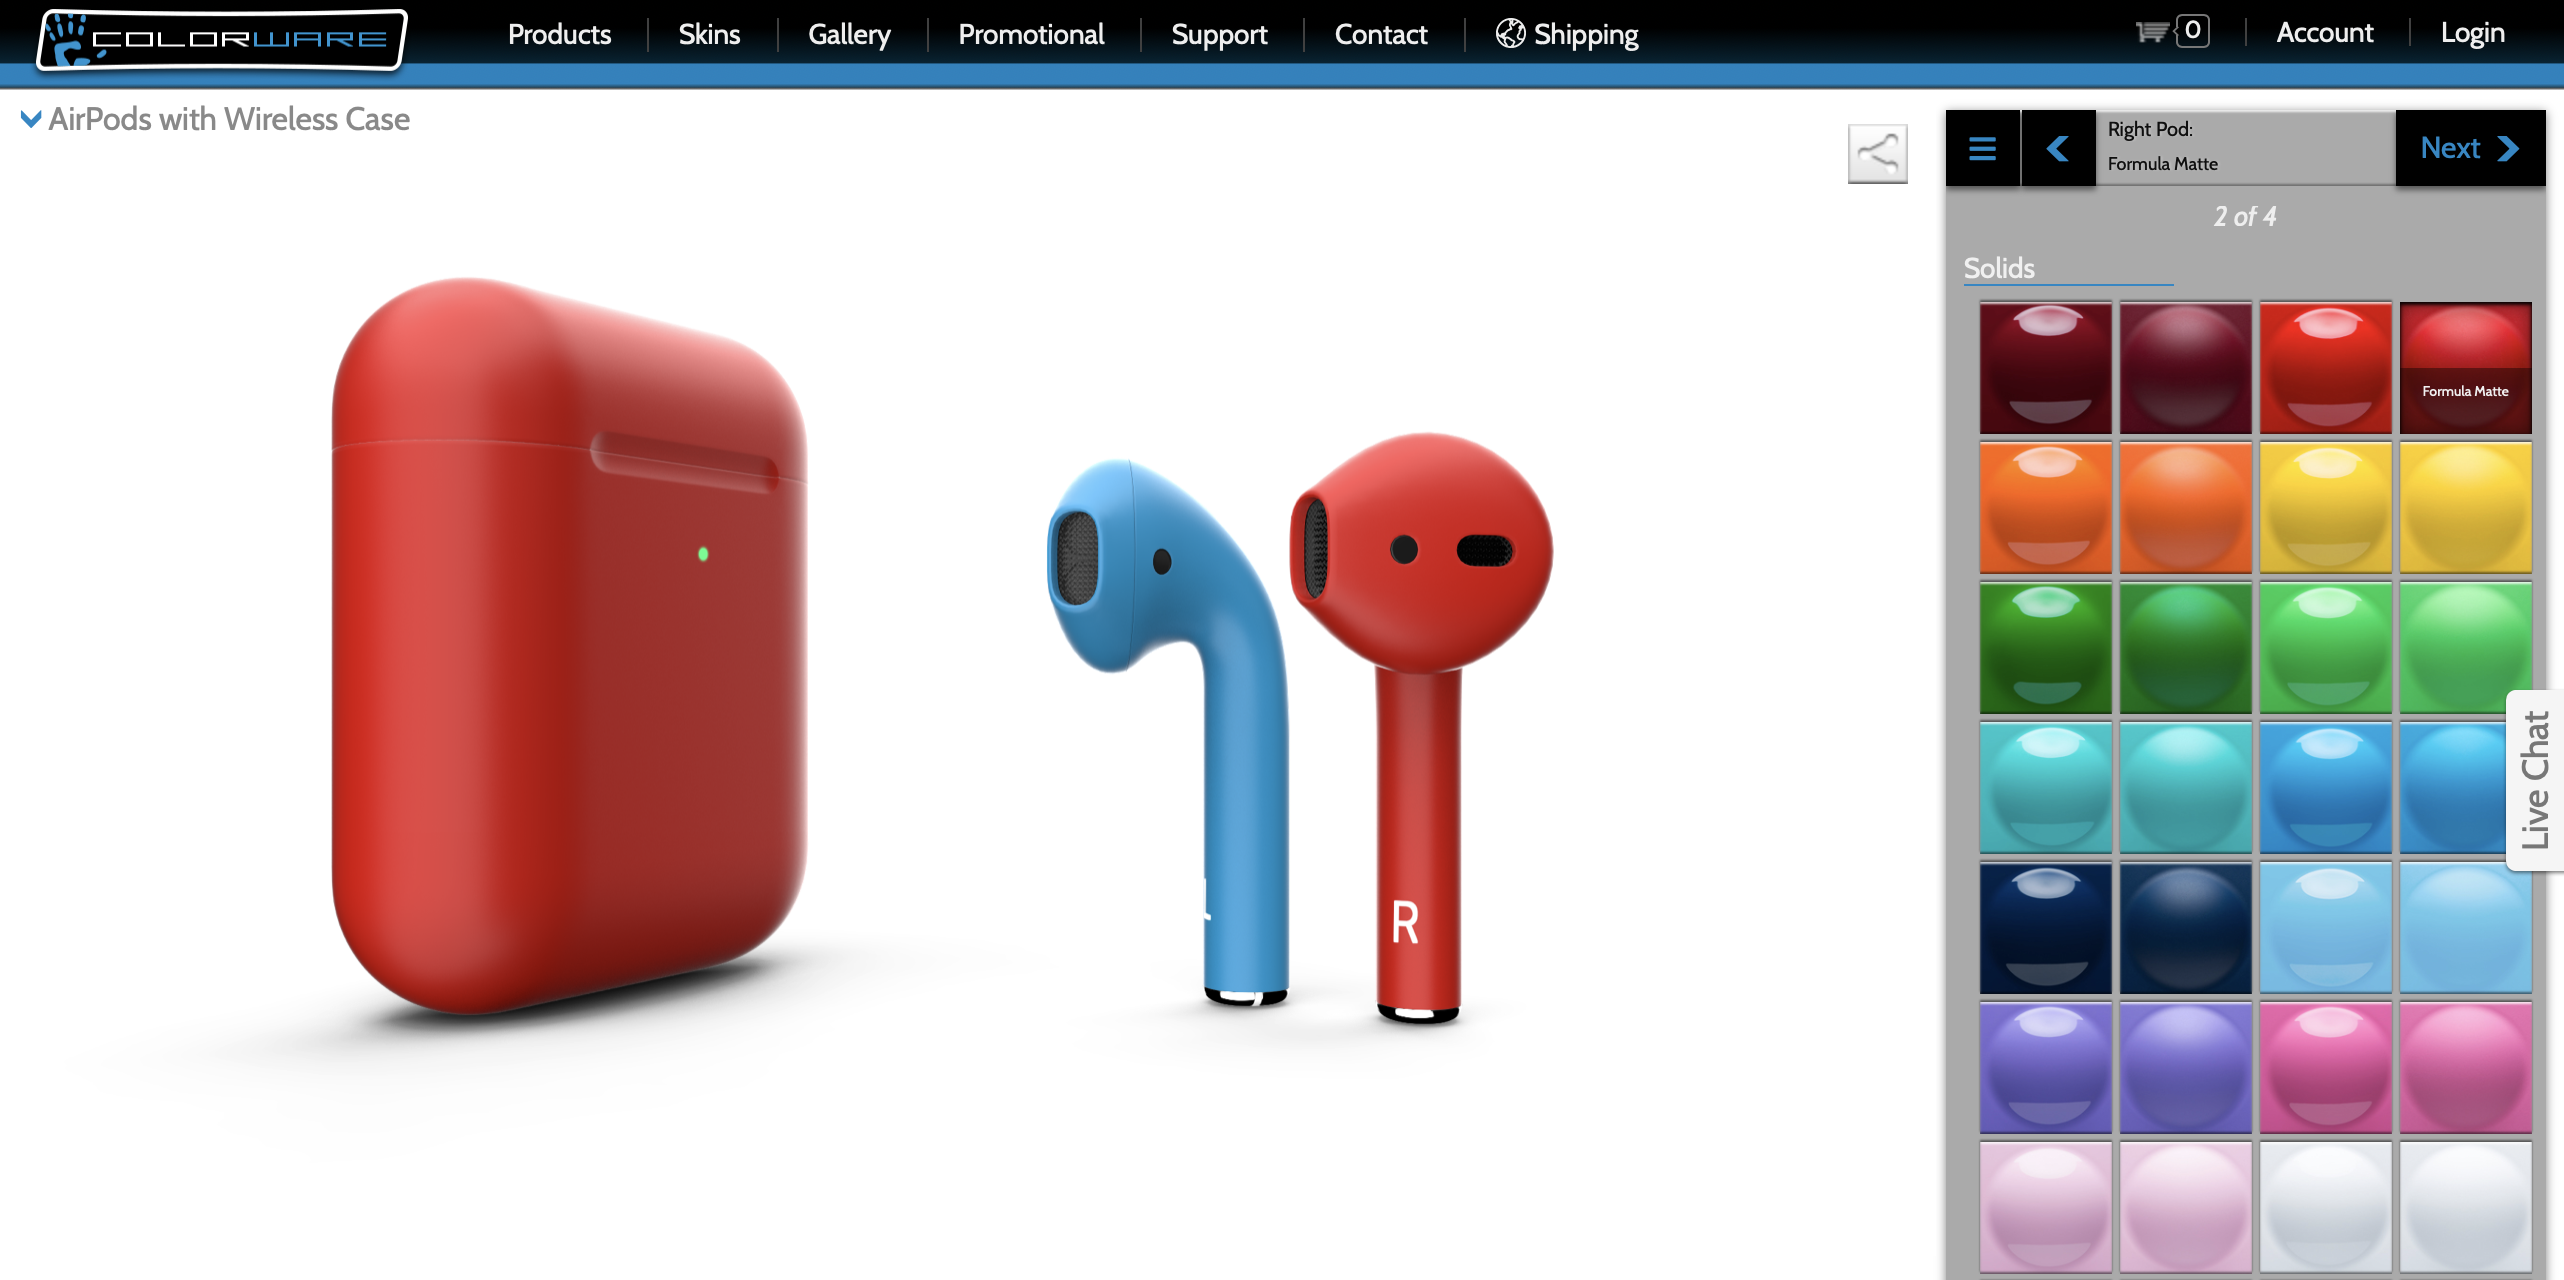 Colorware Custom Airpods 2 In Glossy And Matte Finishes